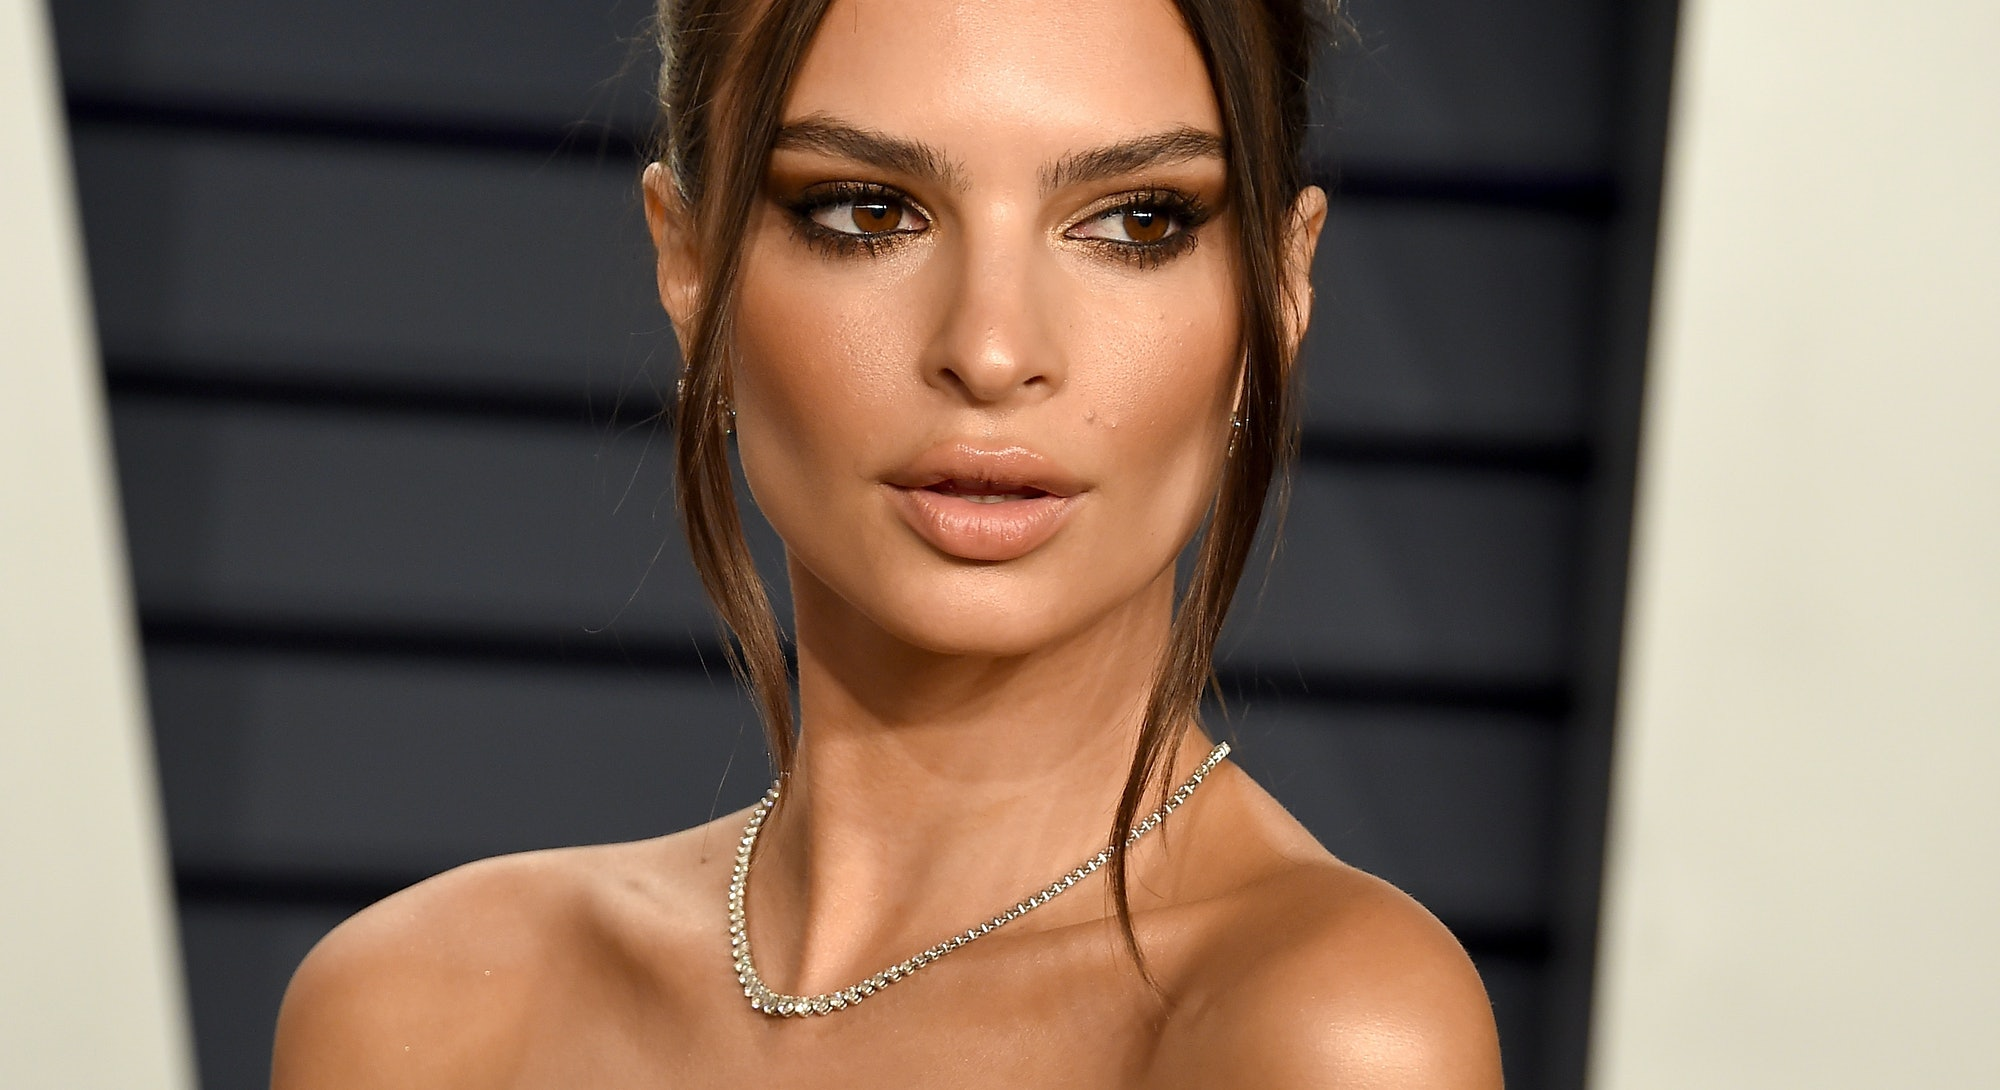 Emily Ratajkowski's best makeup looks over the years have been unforgettable —keep reading for majo...